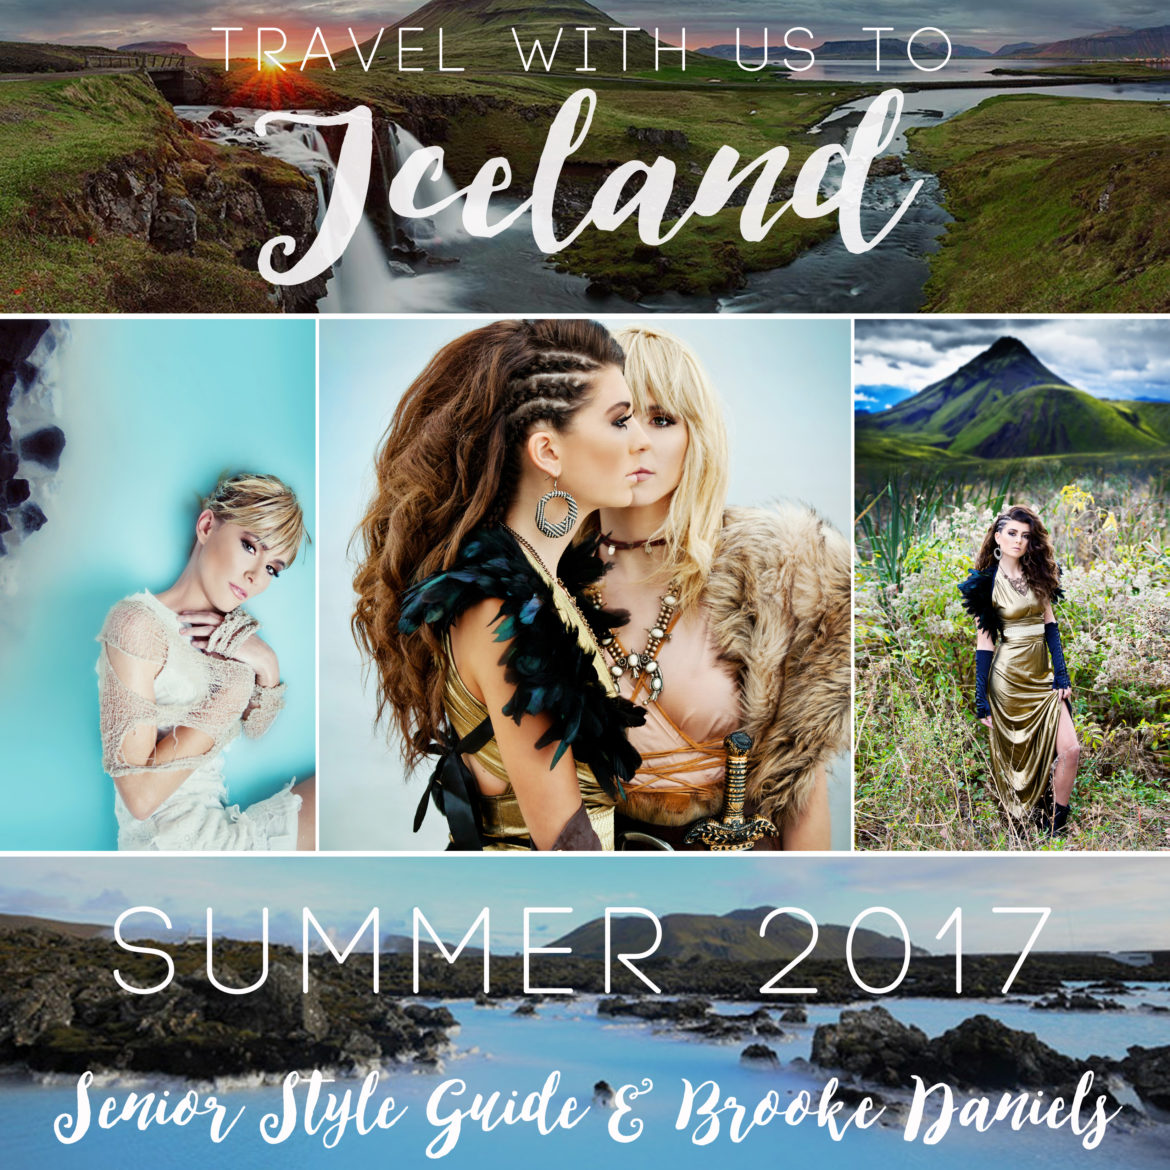 Destination Iceland…Registration Opens Today at 11 am eastern!